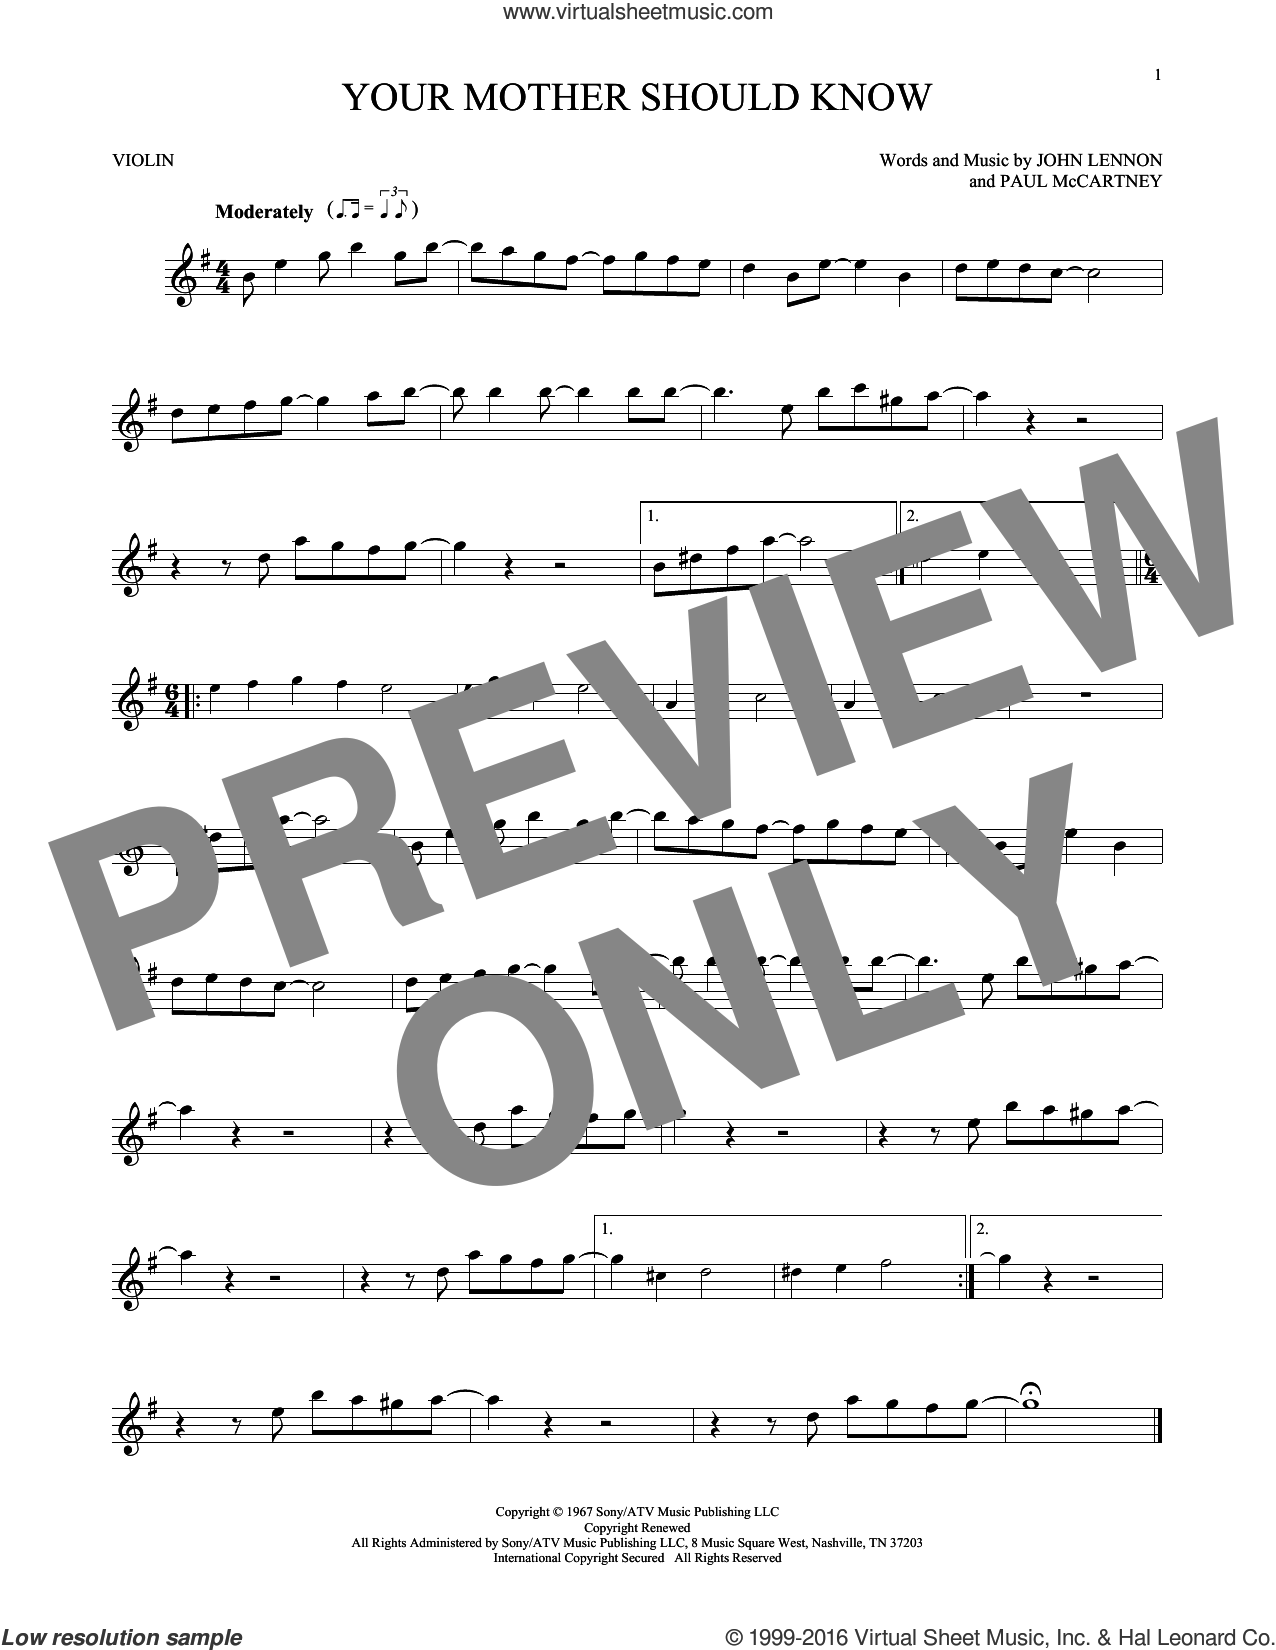 Your Mother Should Know sheet music for violin solo by The Beatles, John Lennon and Paul McCartney, intermediate skill level